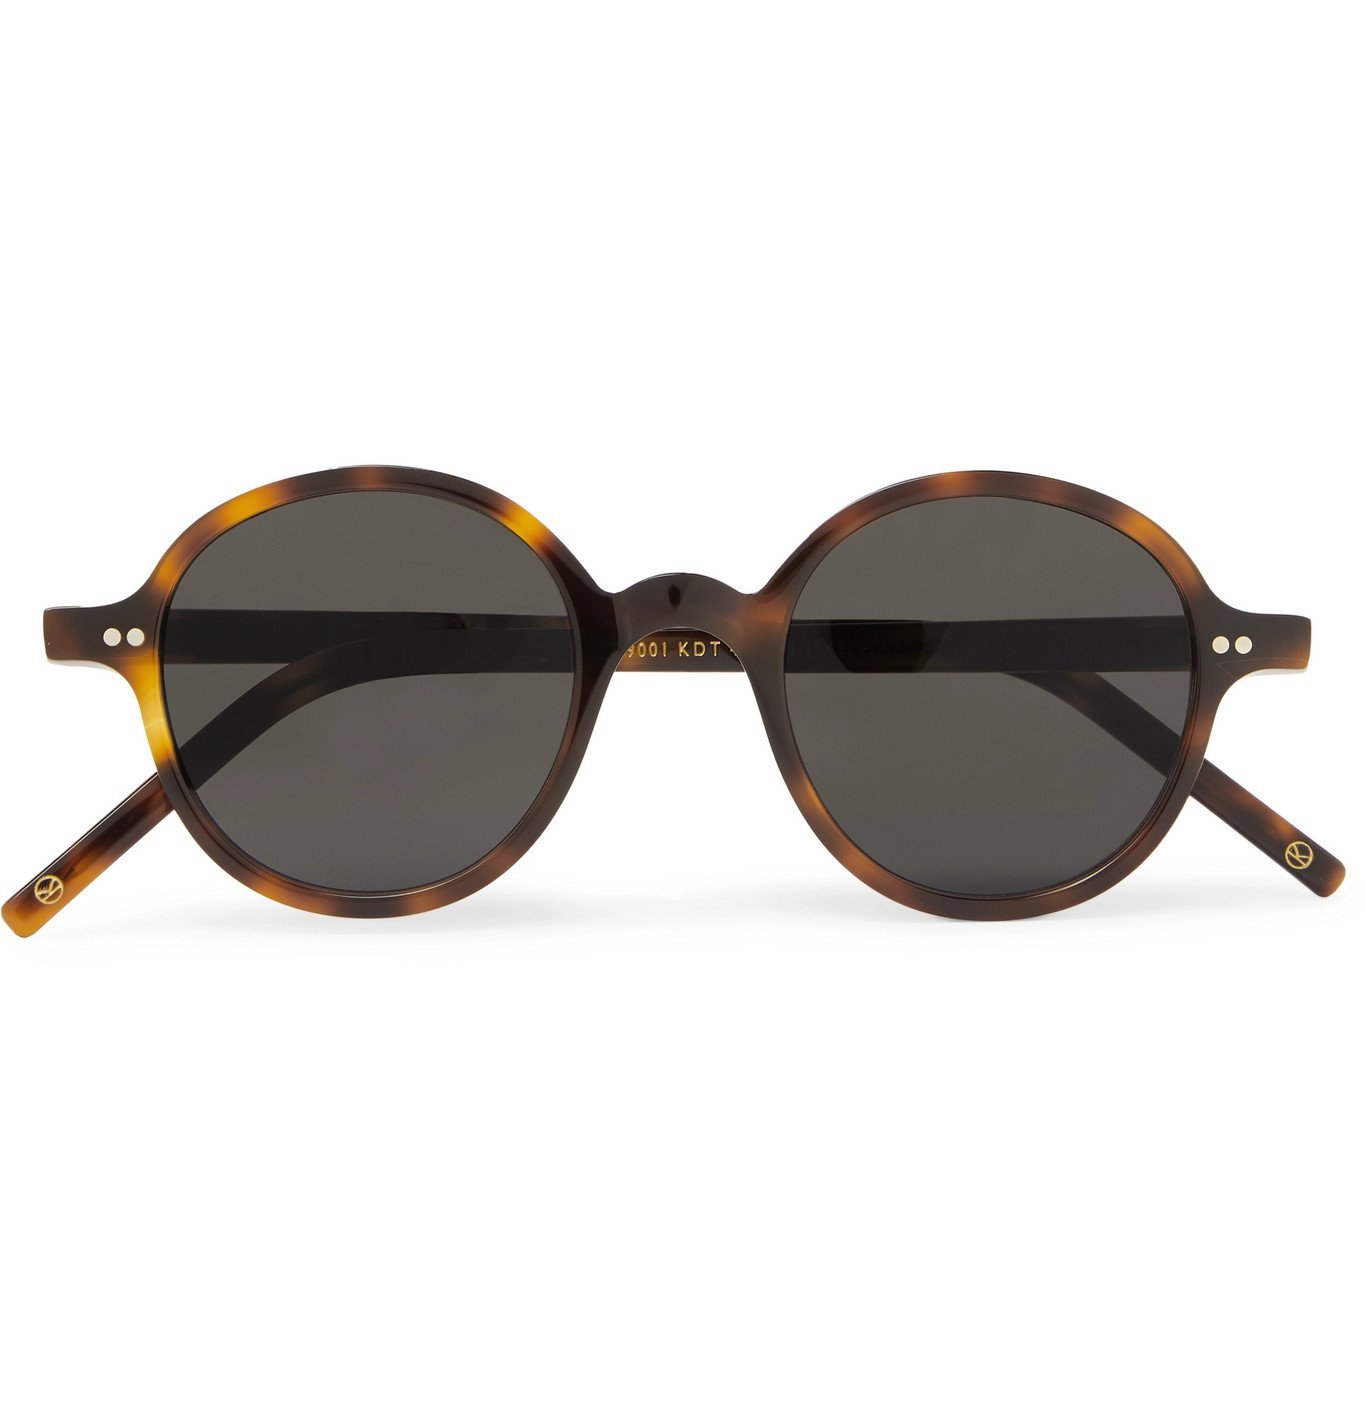 Photo: Kingsman - Cutler and Gross Round-Frame Tortoiseshell Acetate Sunglasses - Tortoiseshell